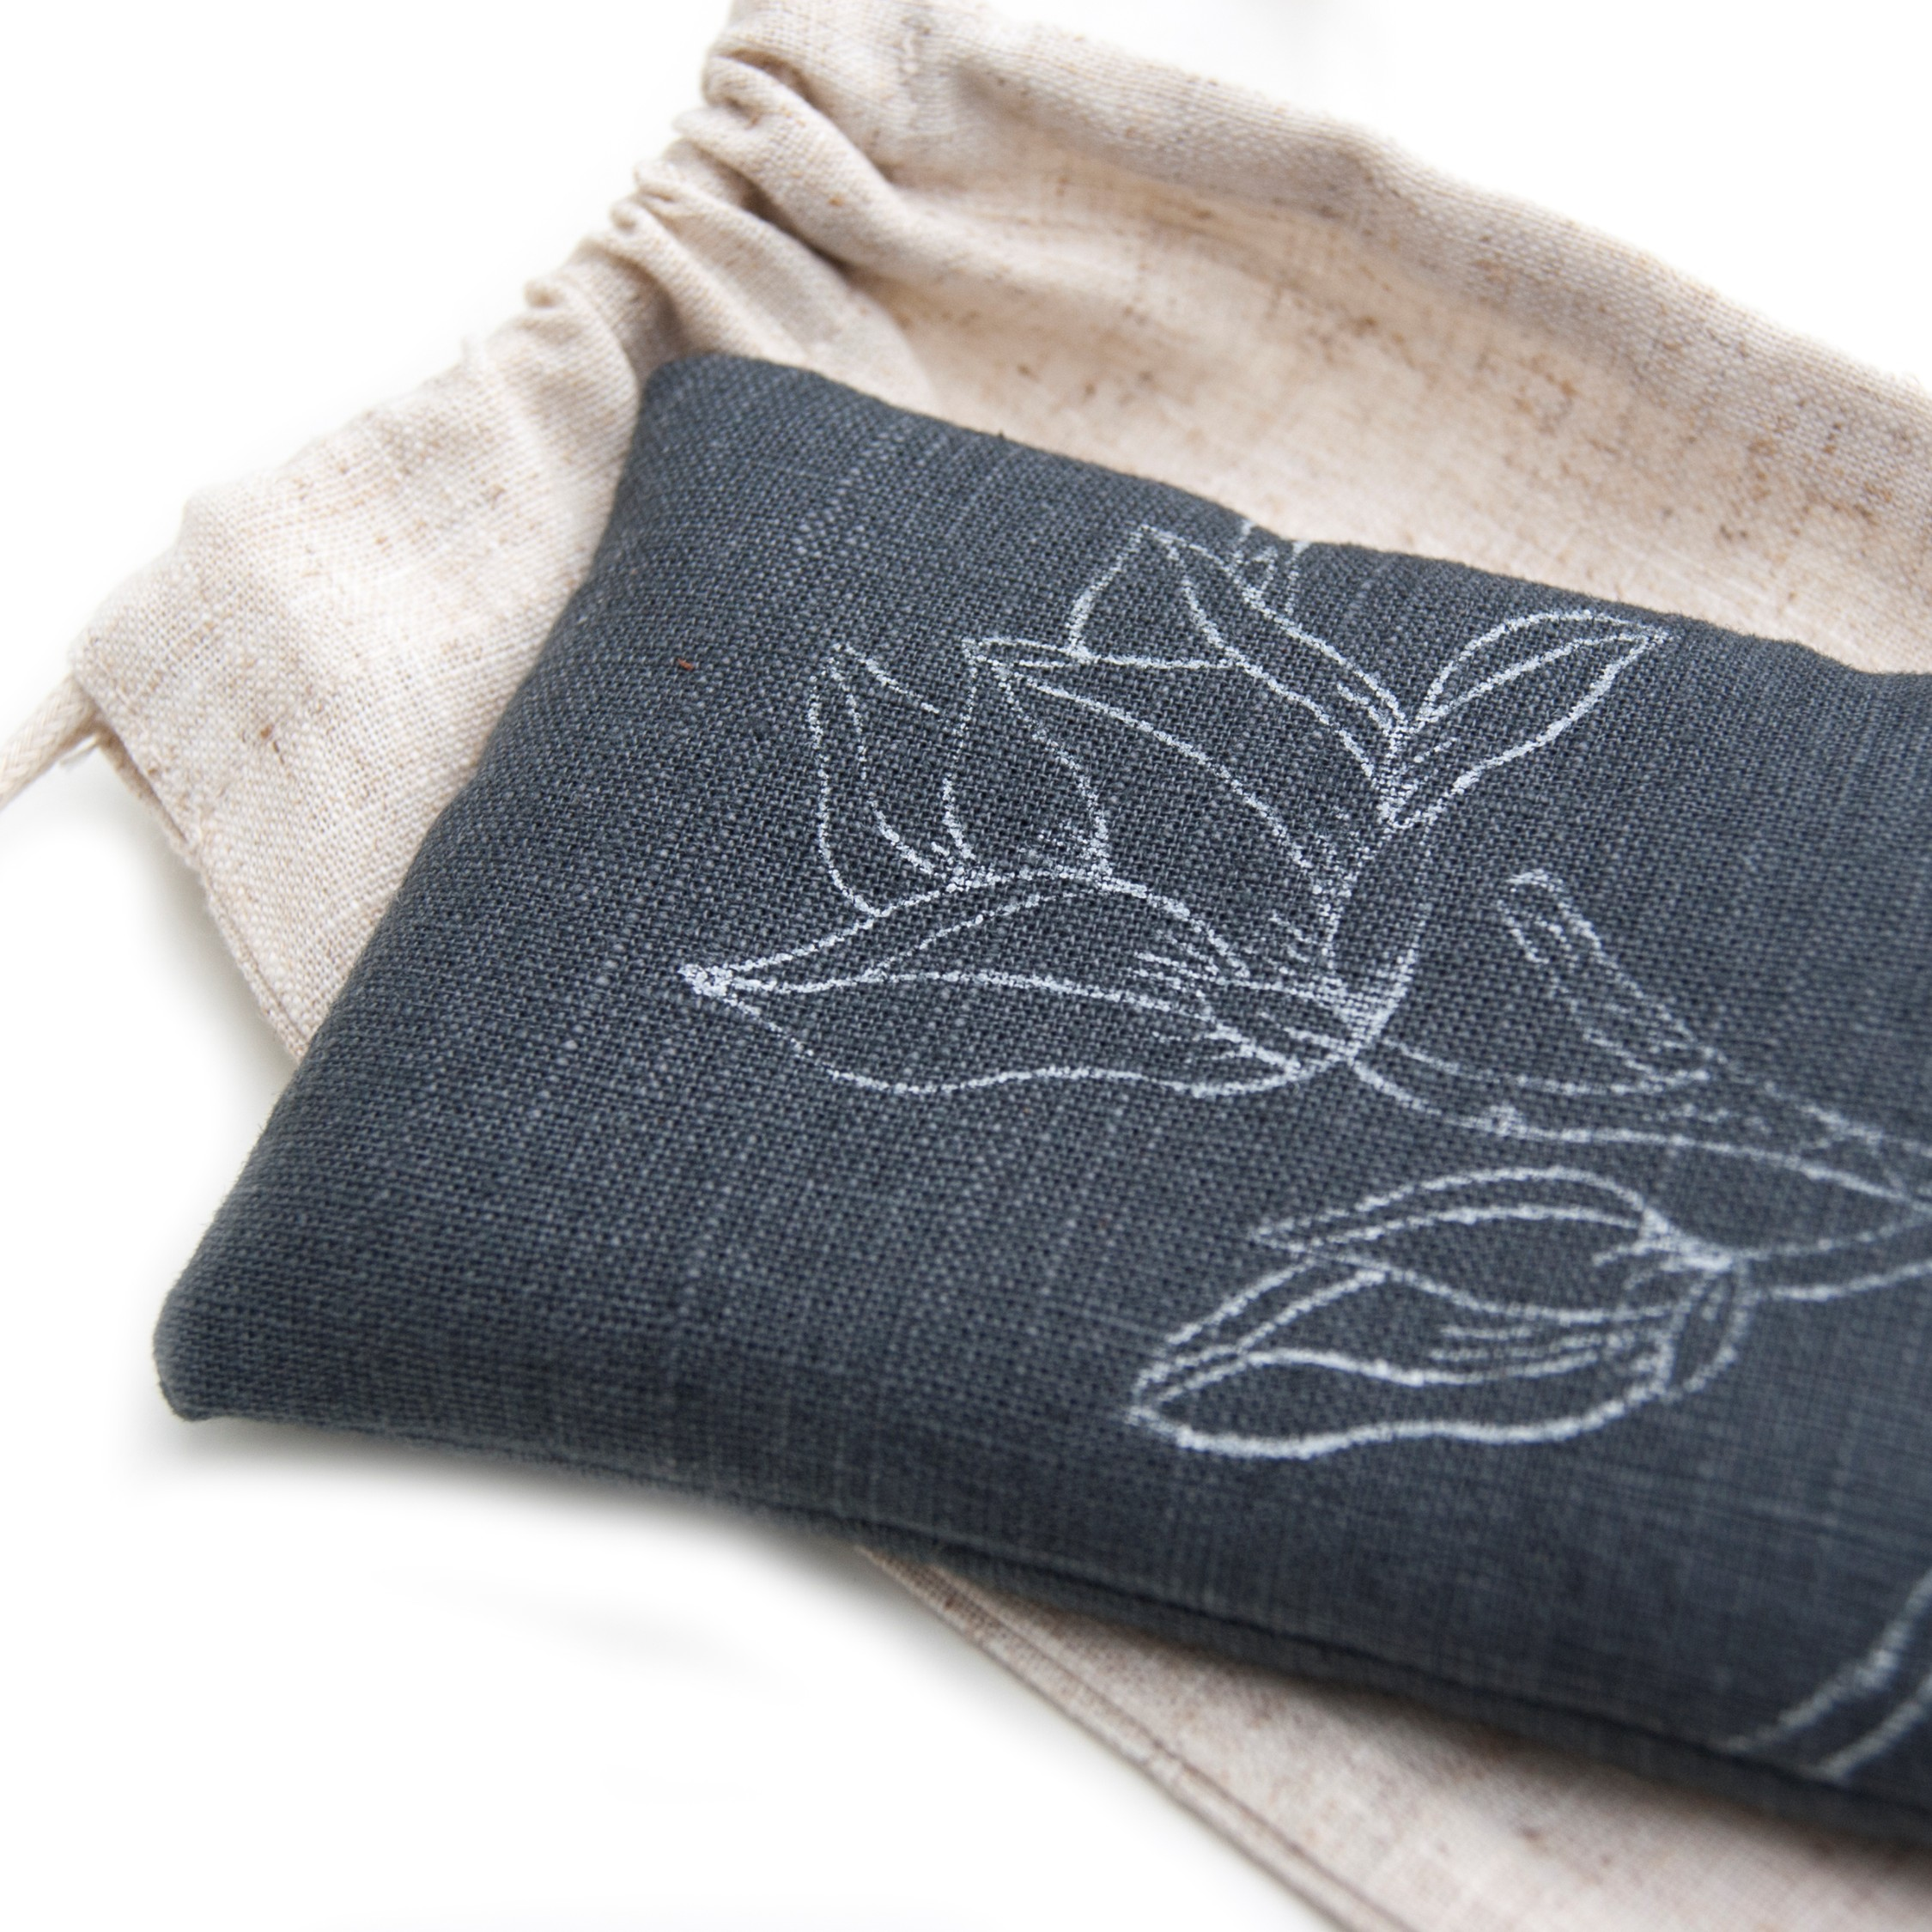 Lavender eye pillow Magnolia